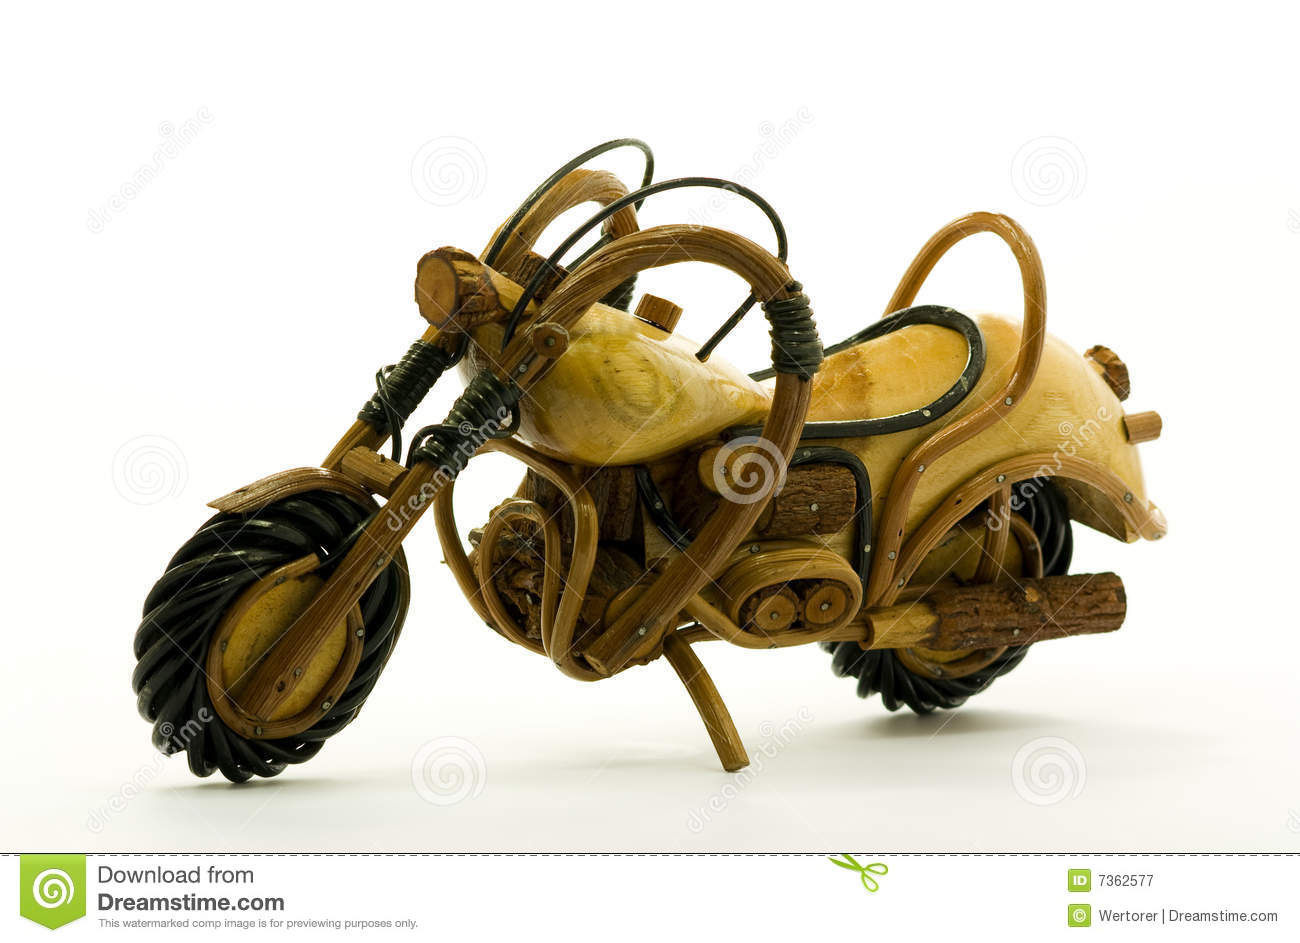 Free Wooden Motorcycle Plans, Wall Mounted Shelves Plans ...